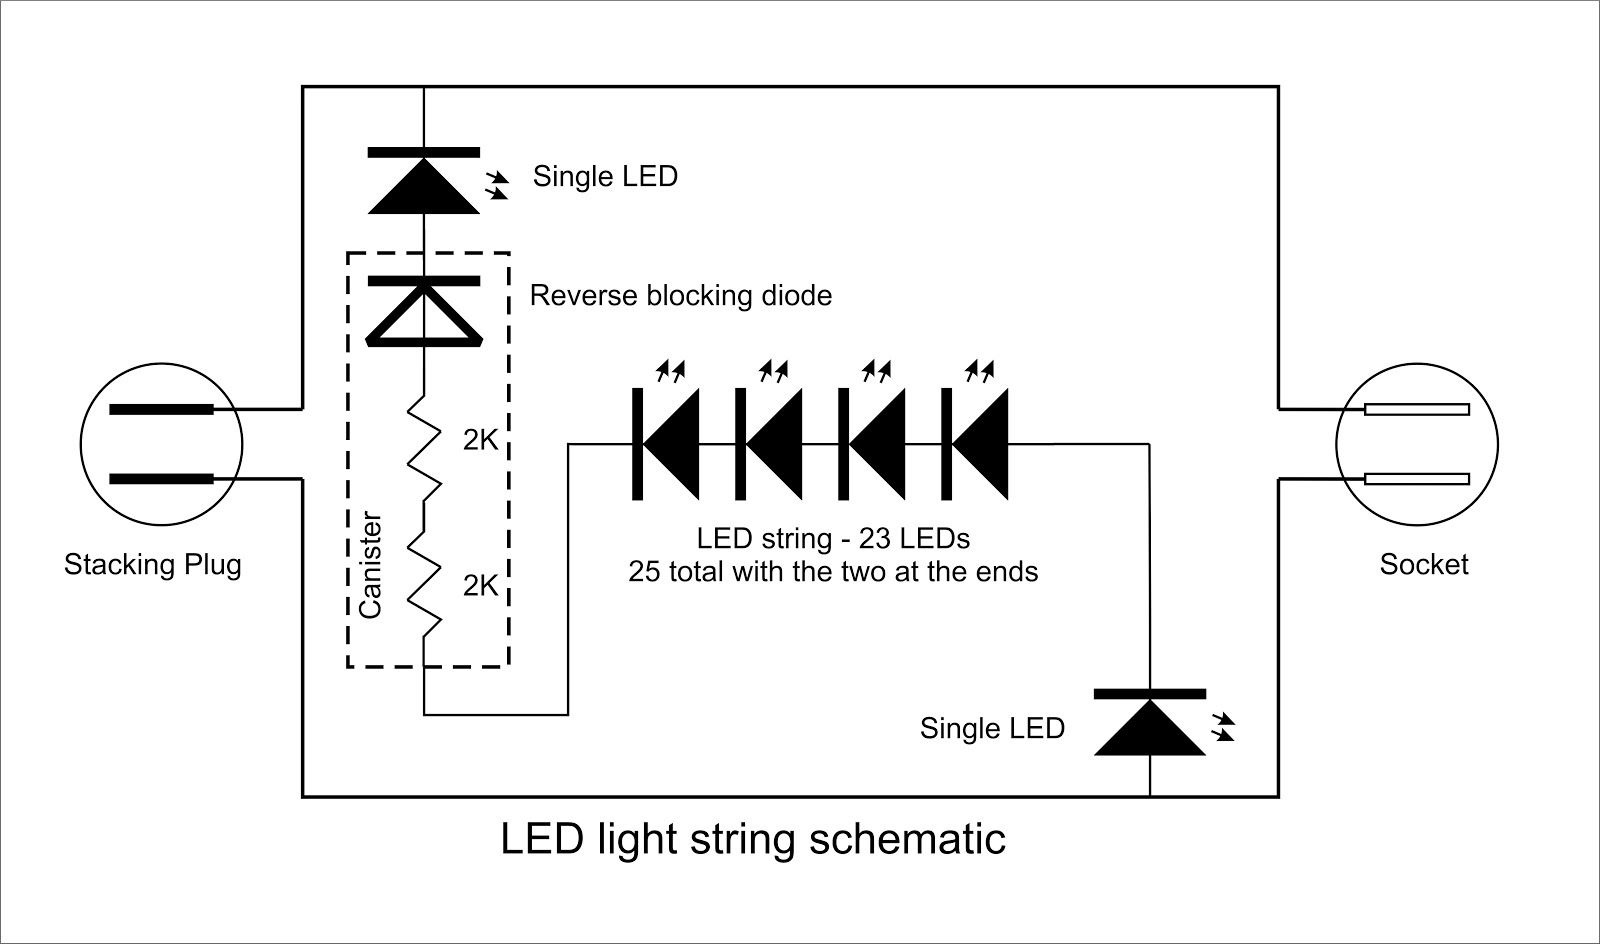 led light string schematic georgesworkshop fixing led string lights wiring diagram led lights for a trailer at bakdesigns.co